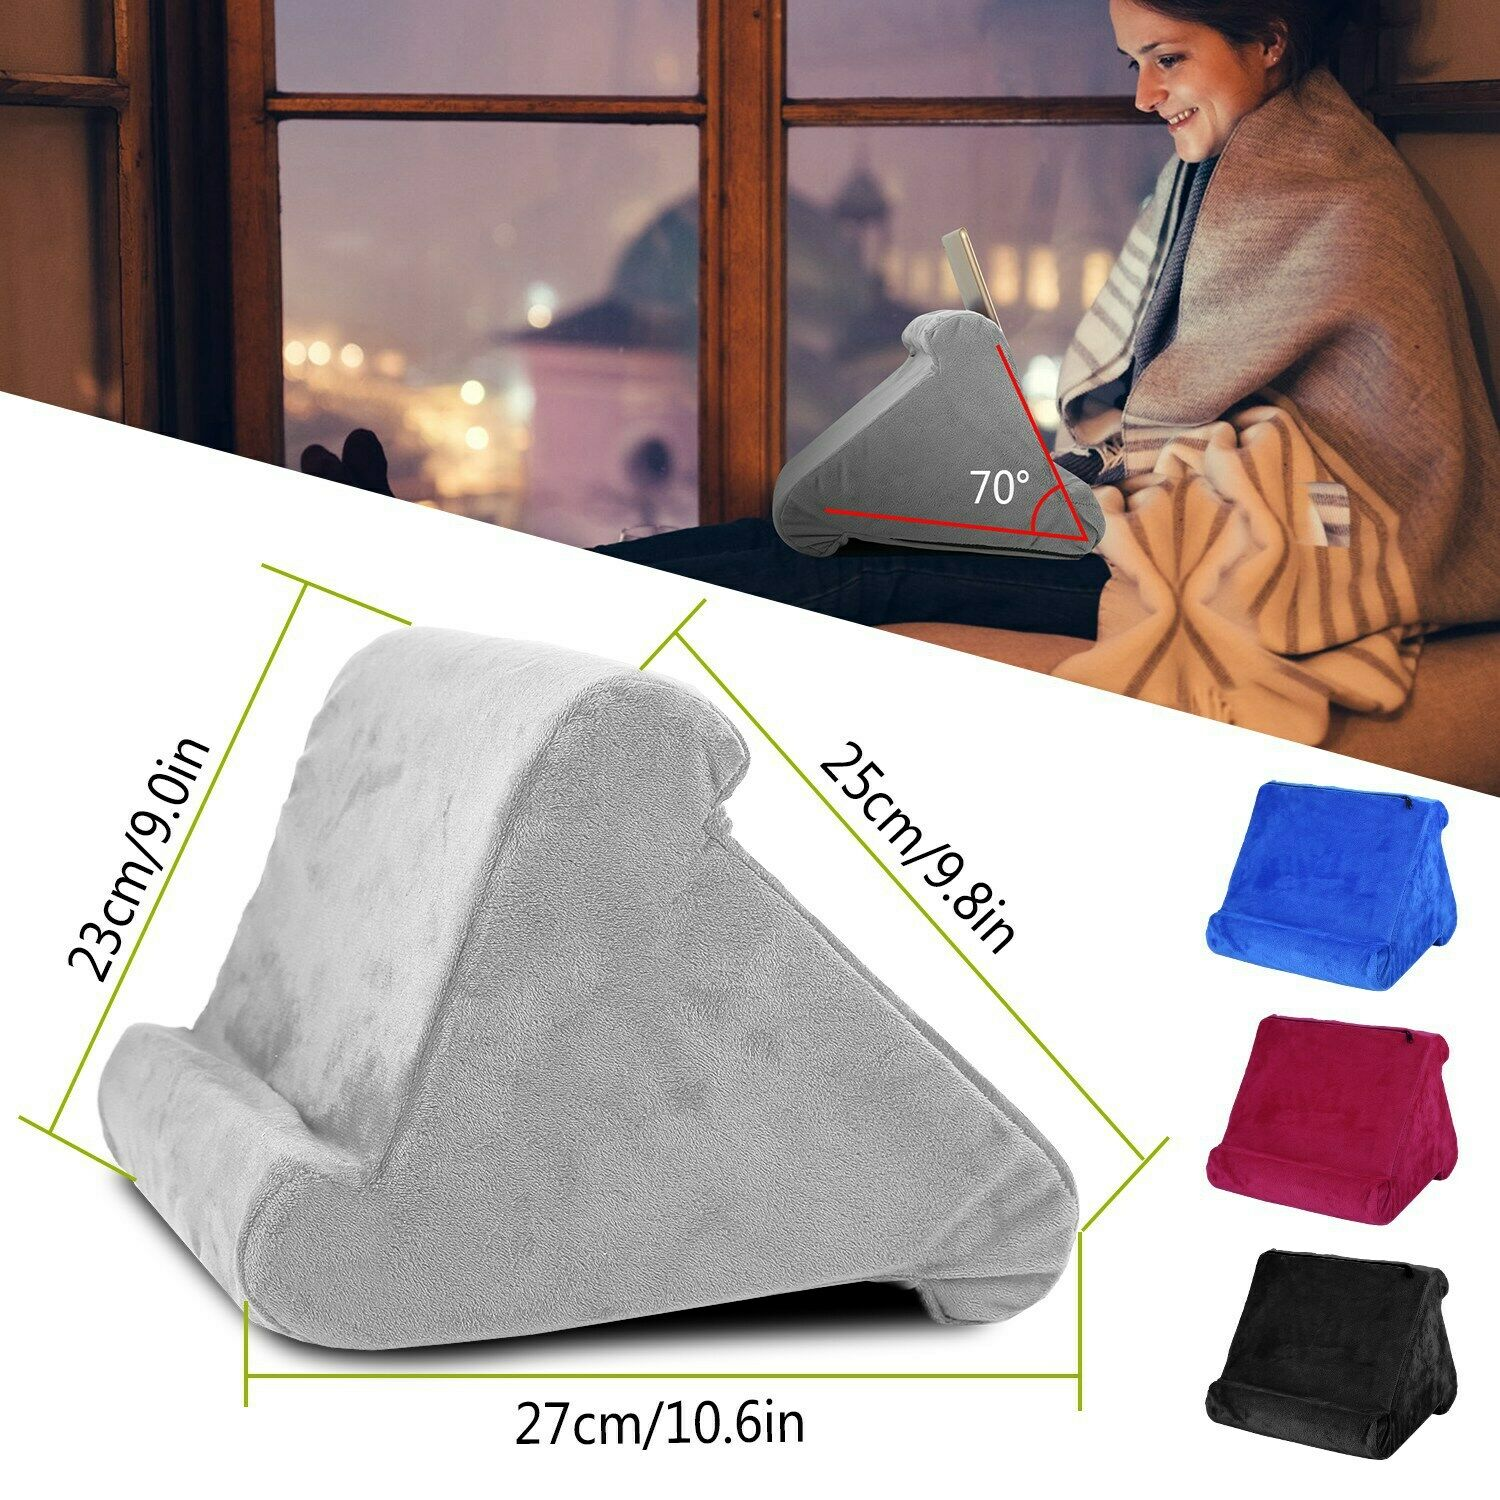 Ipad Pillow For Bed Sofa Stand Holder Pockets Storage Cushion Tablet Black 10 9 For Sale Online Ebay